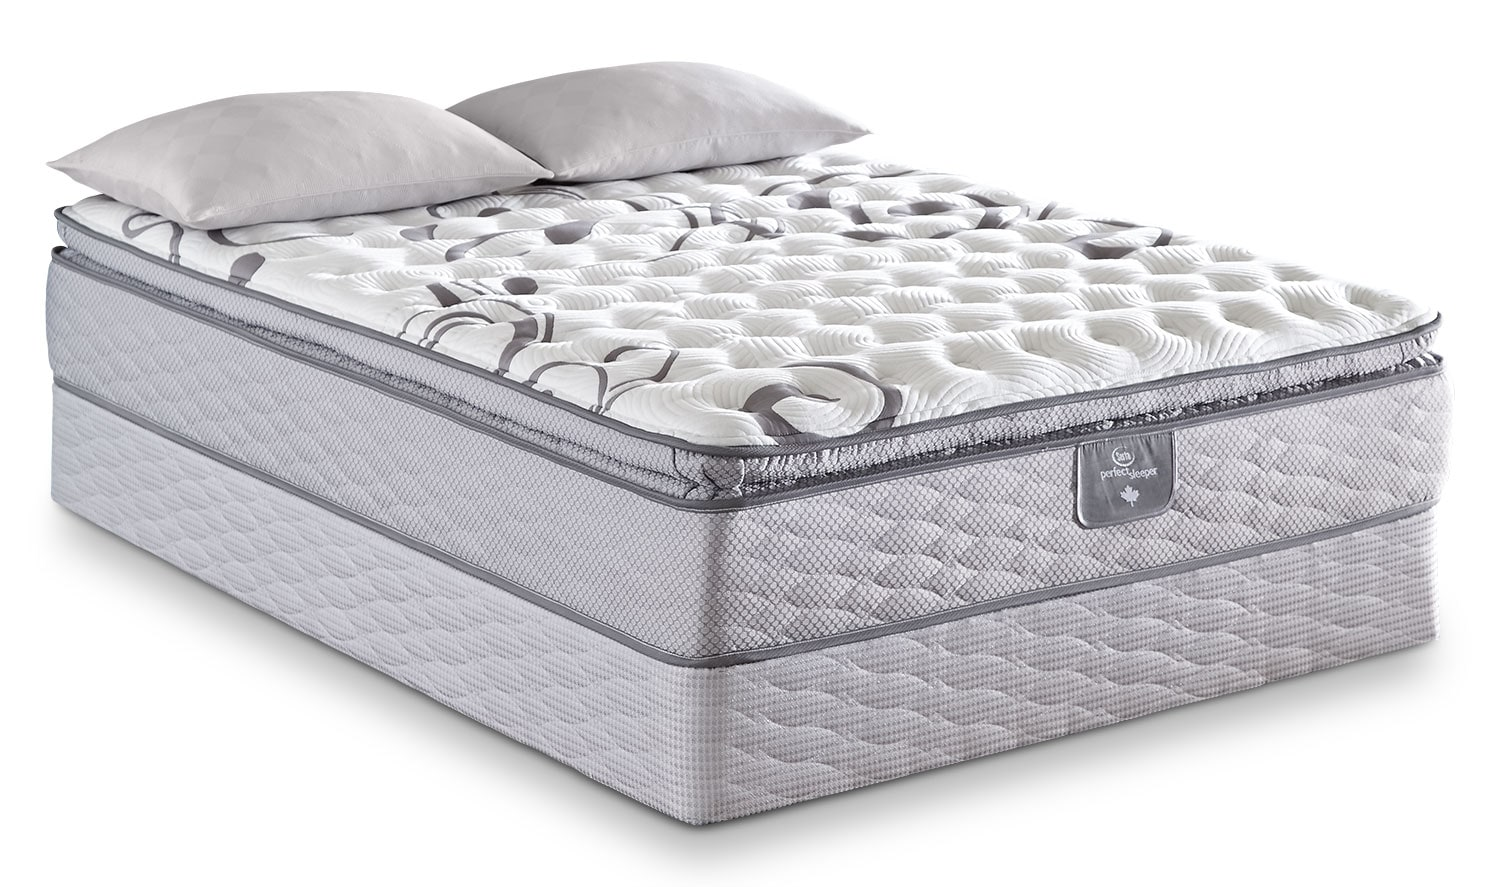 Serta Perfect Sleeper Valebridge Pillow-Top Firm Queen Mattress Set